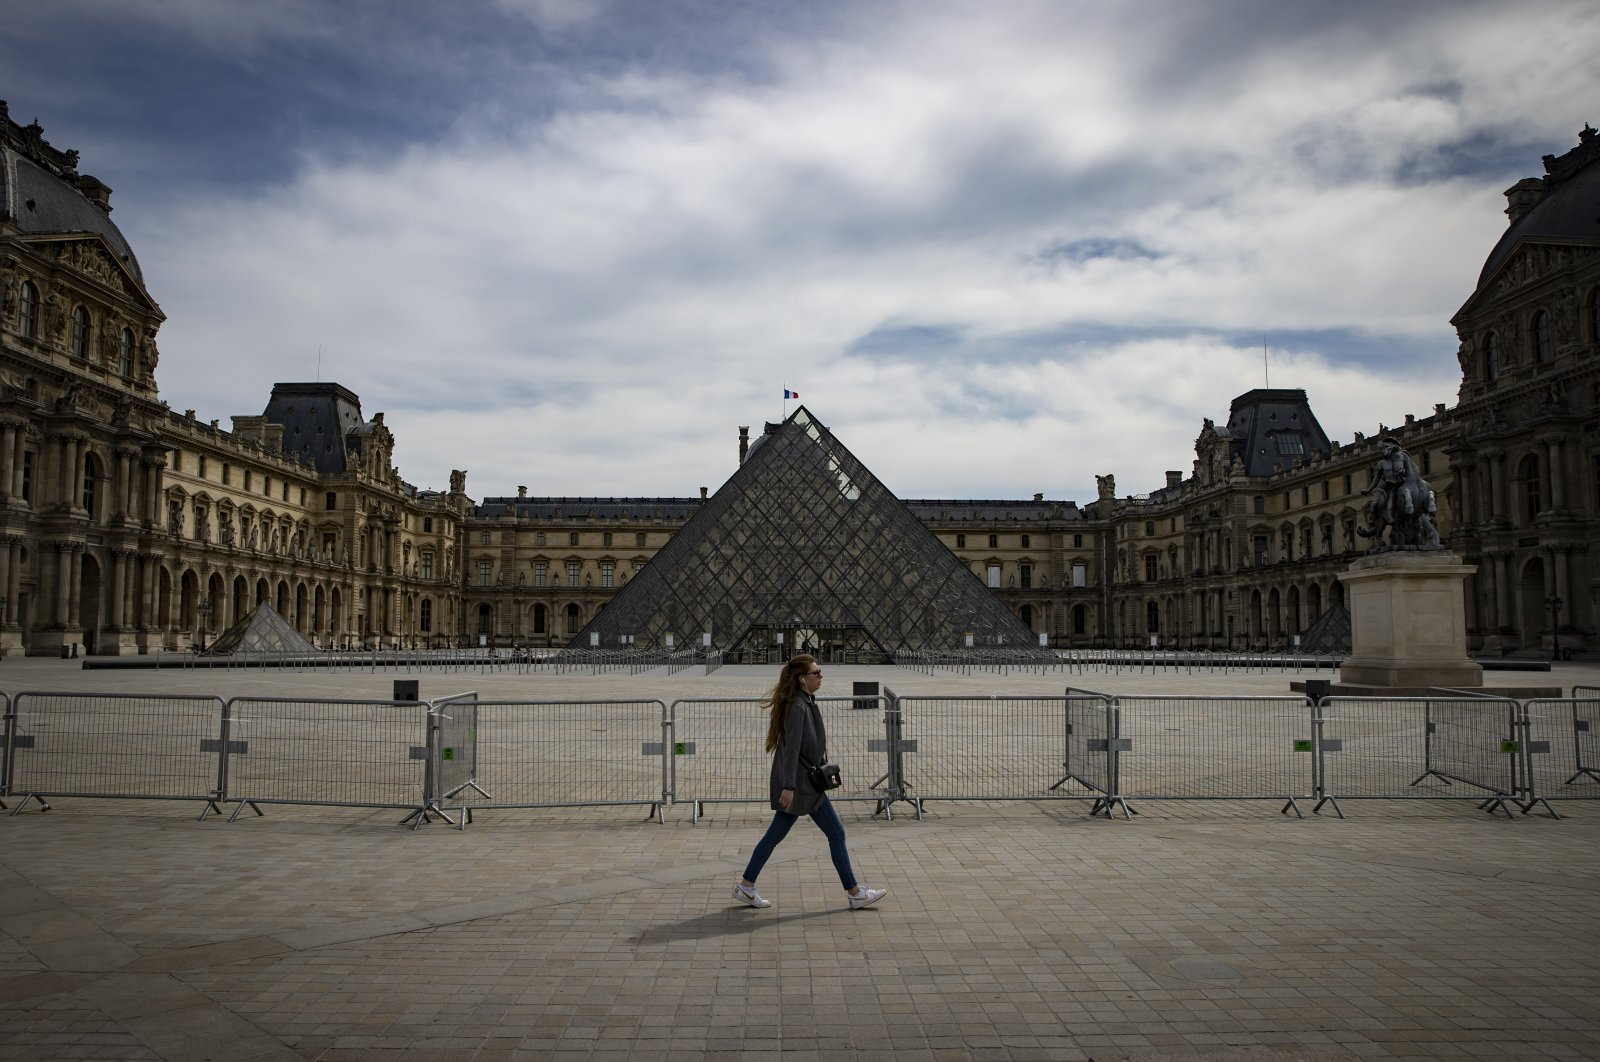 A woman walks past the deserted Louvre in Paris, France, 21 April 2020. France is under lockdown in an attempt to stop the widespread of the SARS-CoV-2 coronavirus causing the Covid-19 disease. (EPA Photo)